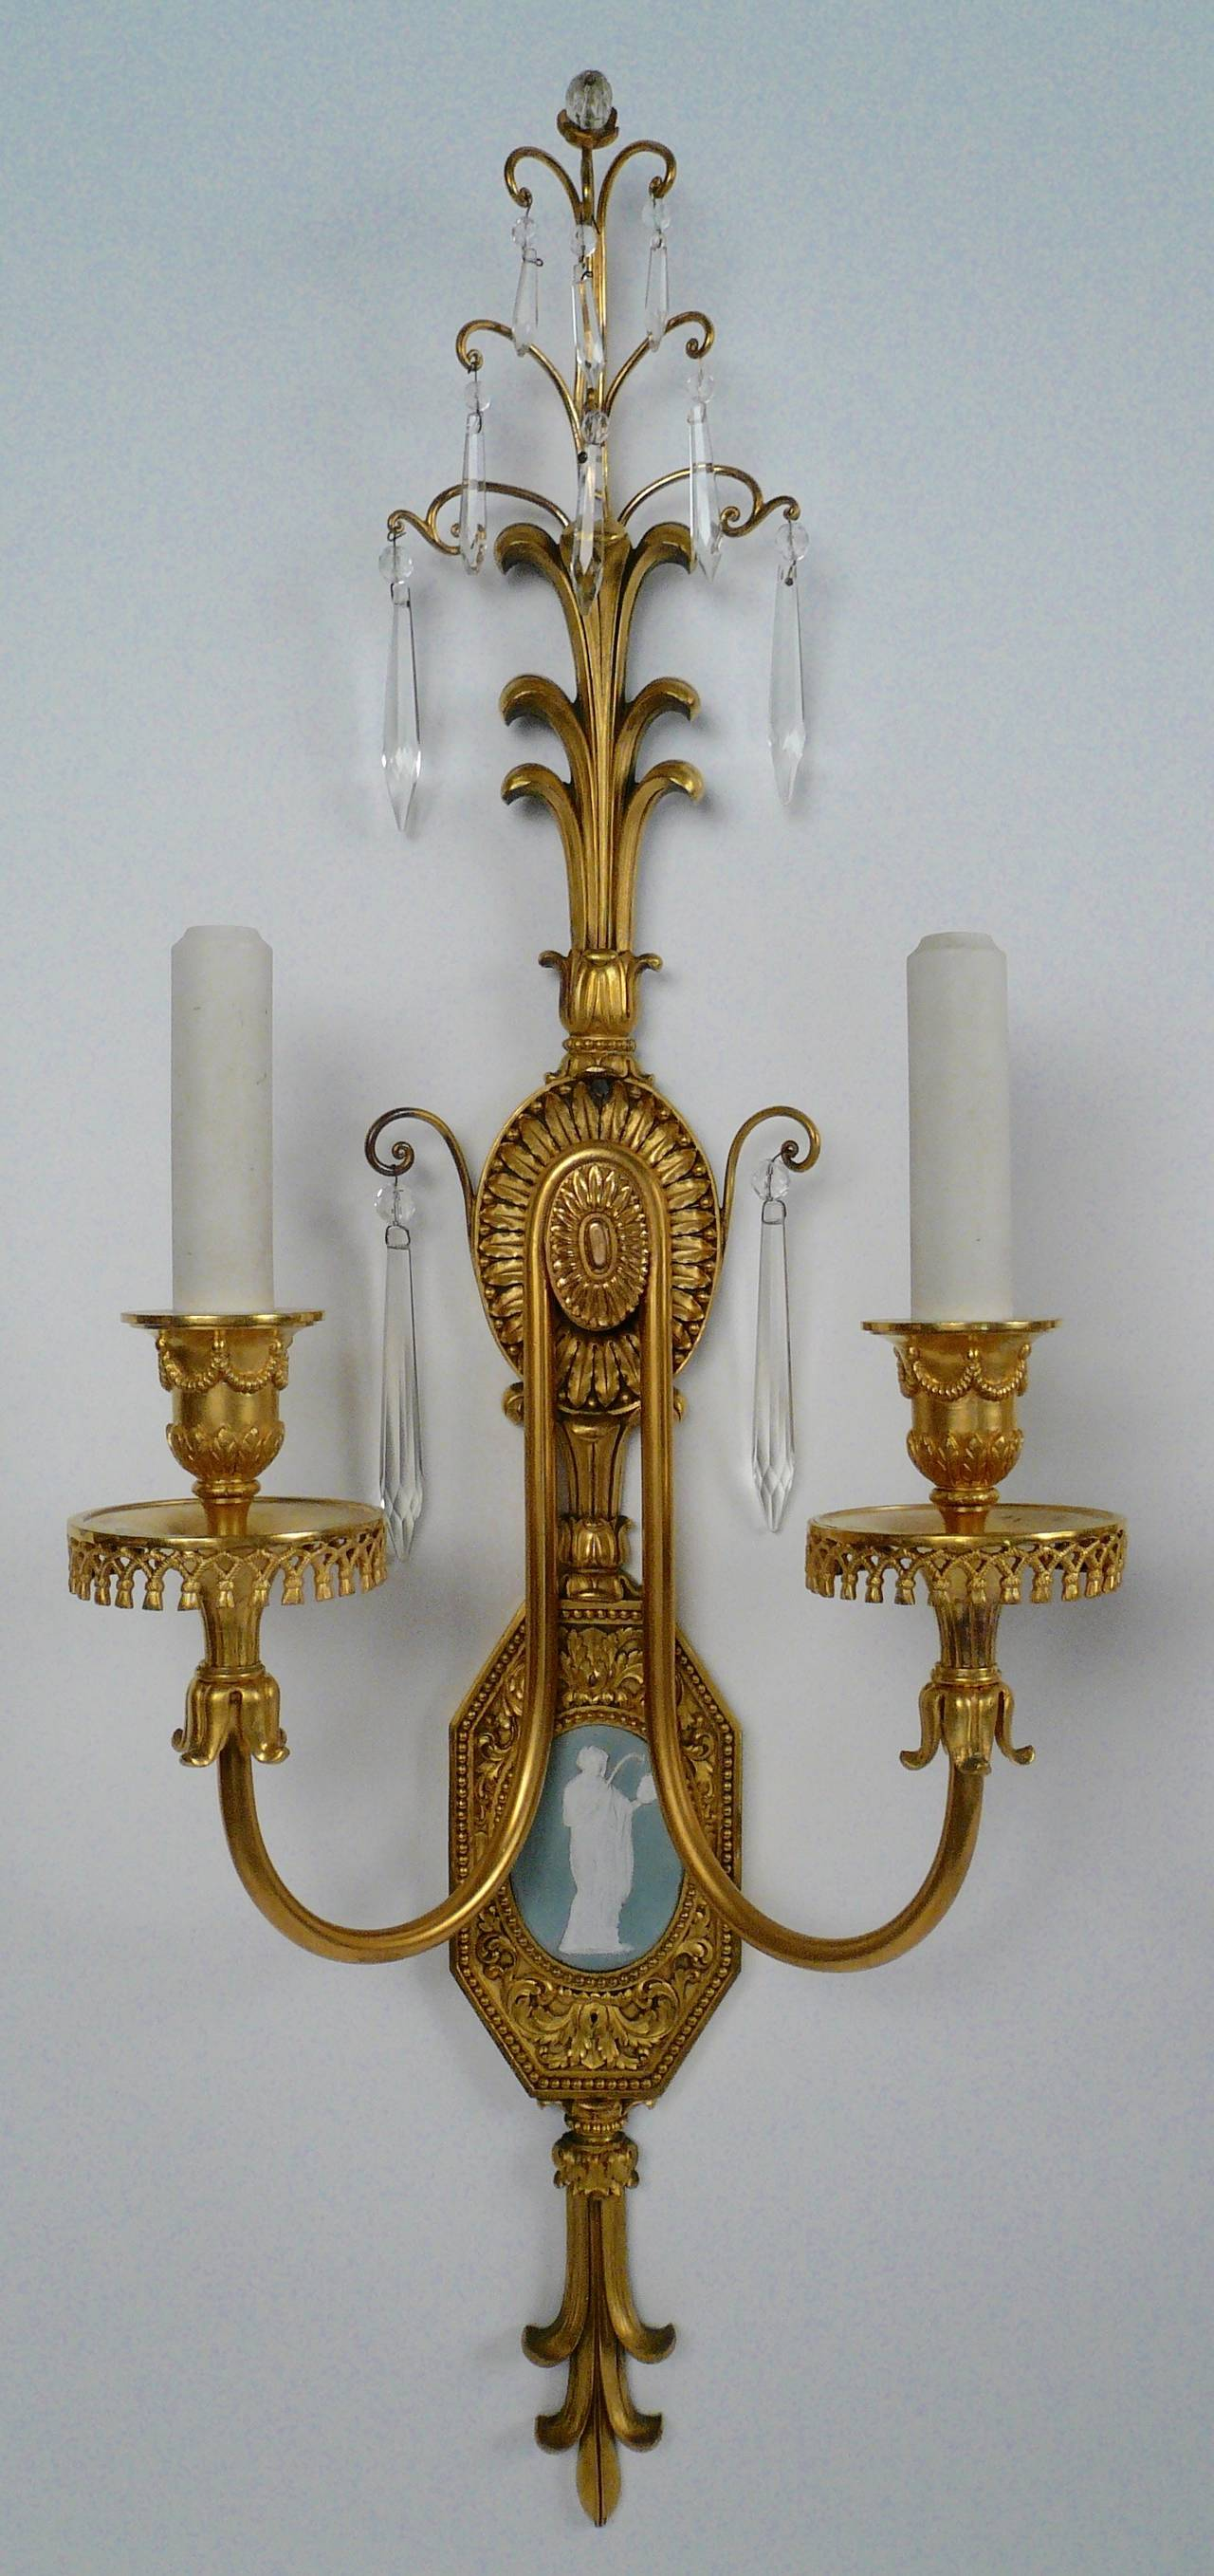 Pair of Adam Style Gilt Bronze Sconces with Enamel Plaques, by E.F. Caldwell 3